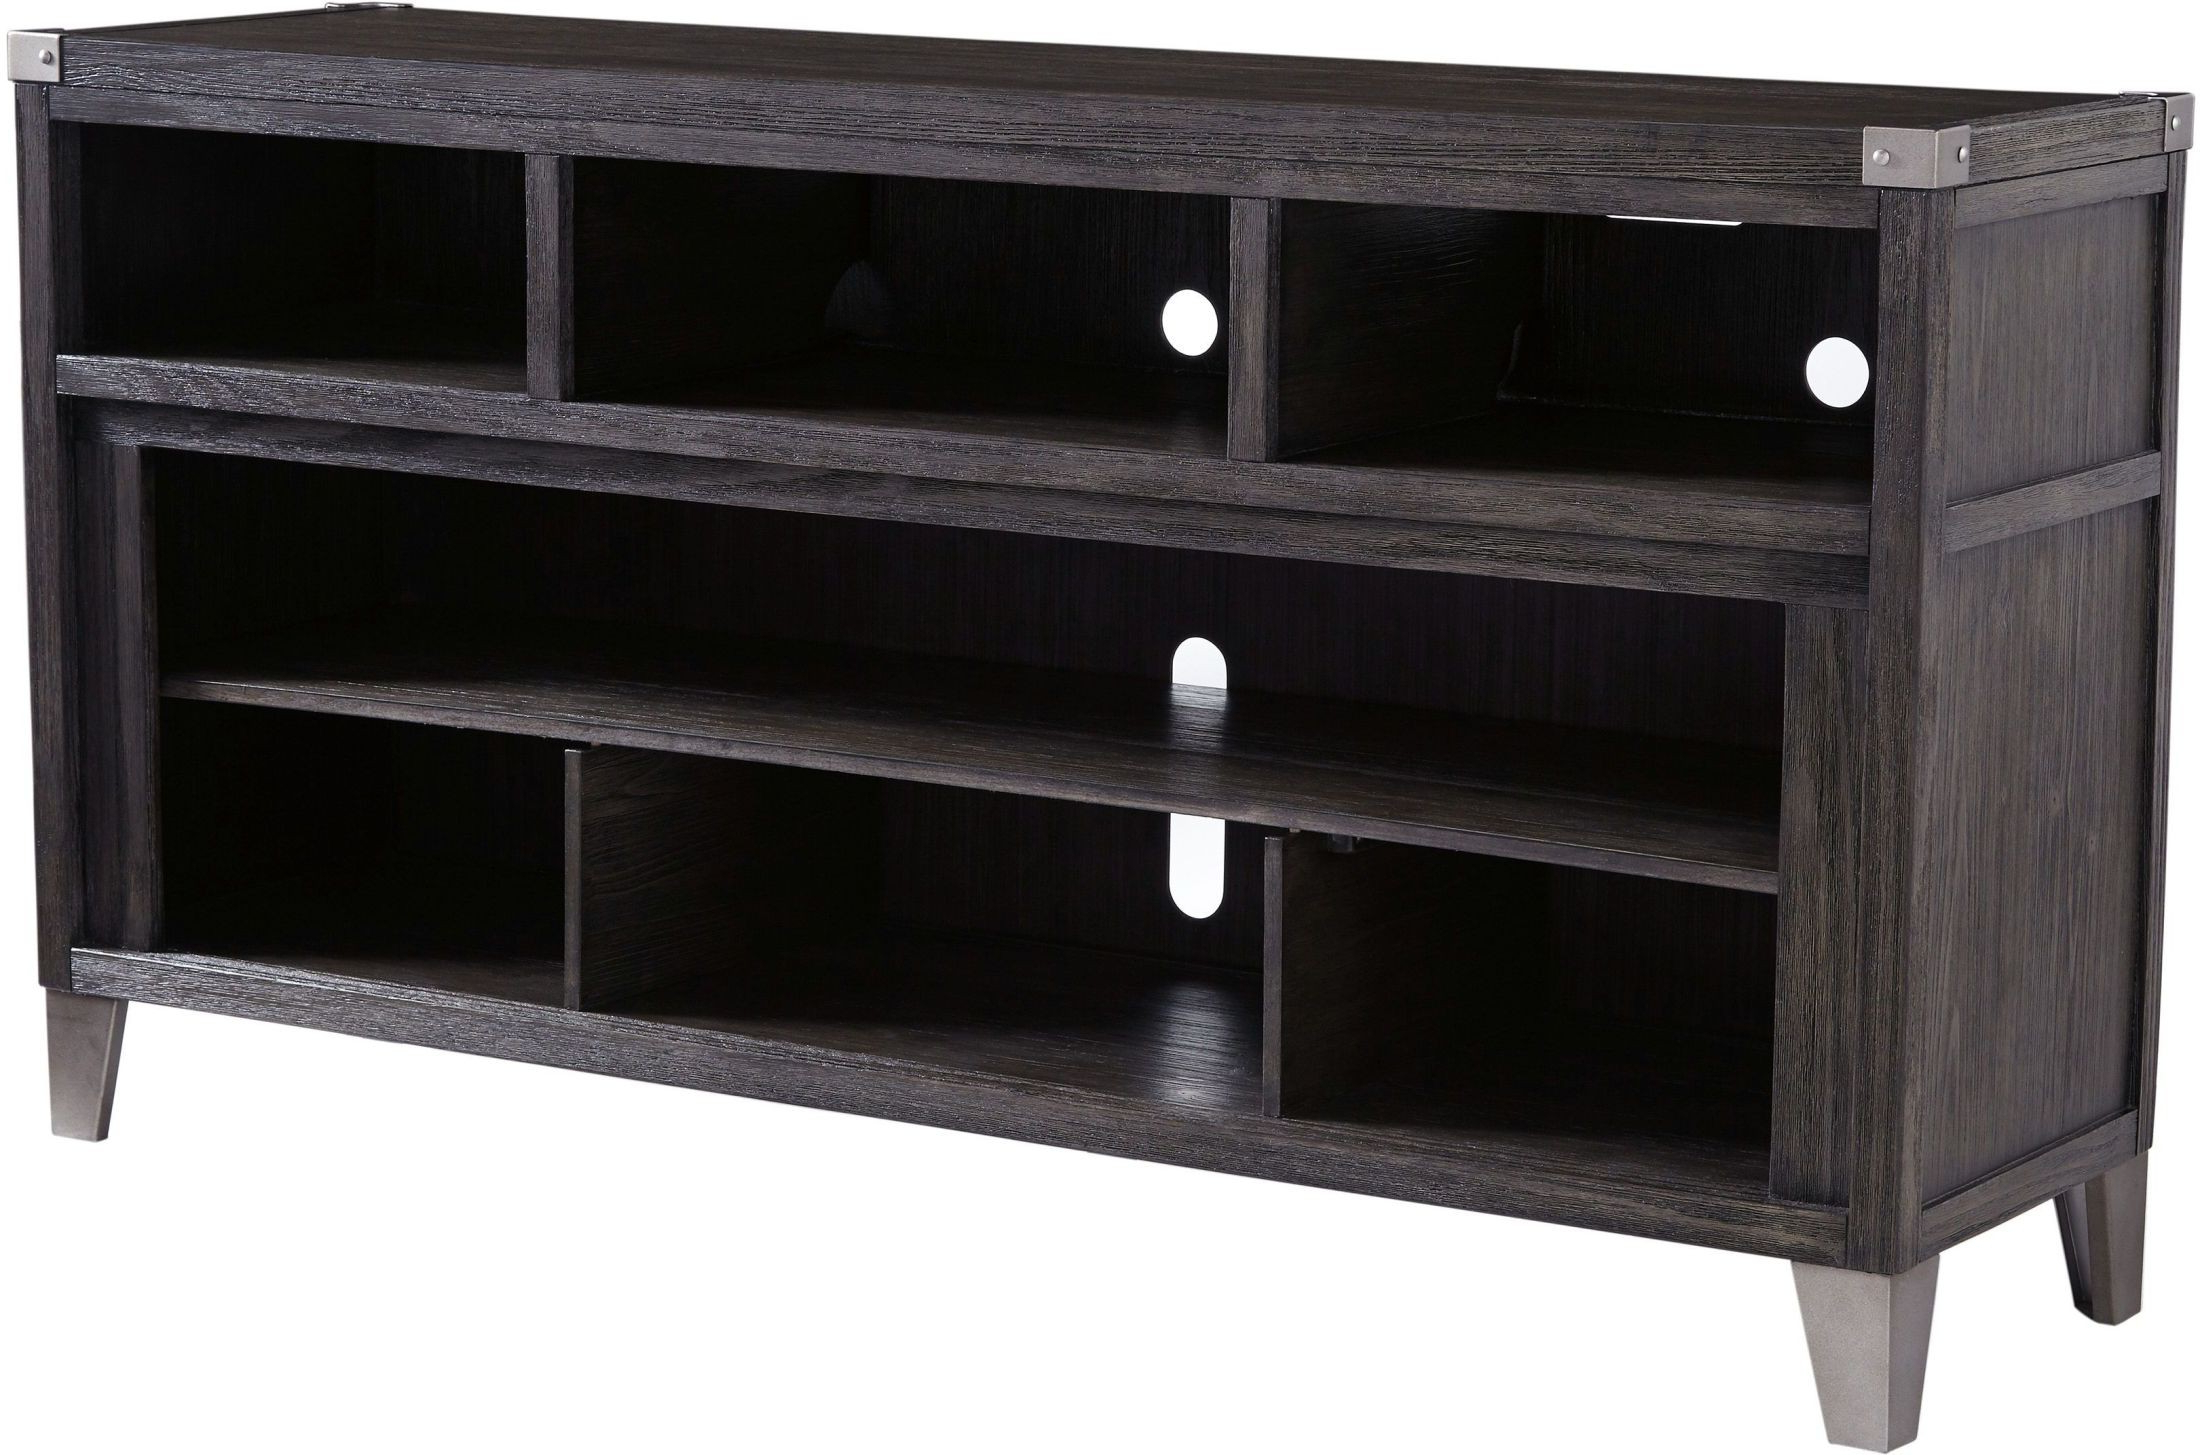 Todoe Gray Lg Tv Stand From Ashley | Coleman Furniture In Vista 68 Inch Tv Stands (View 13 of 20)